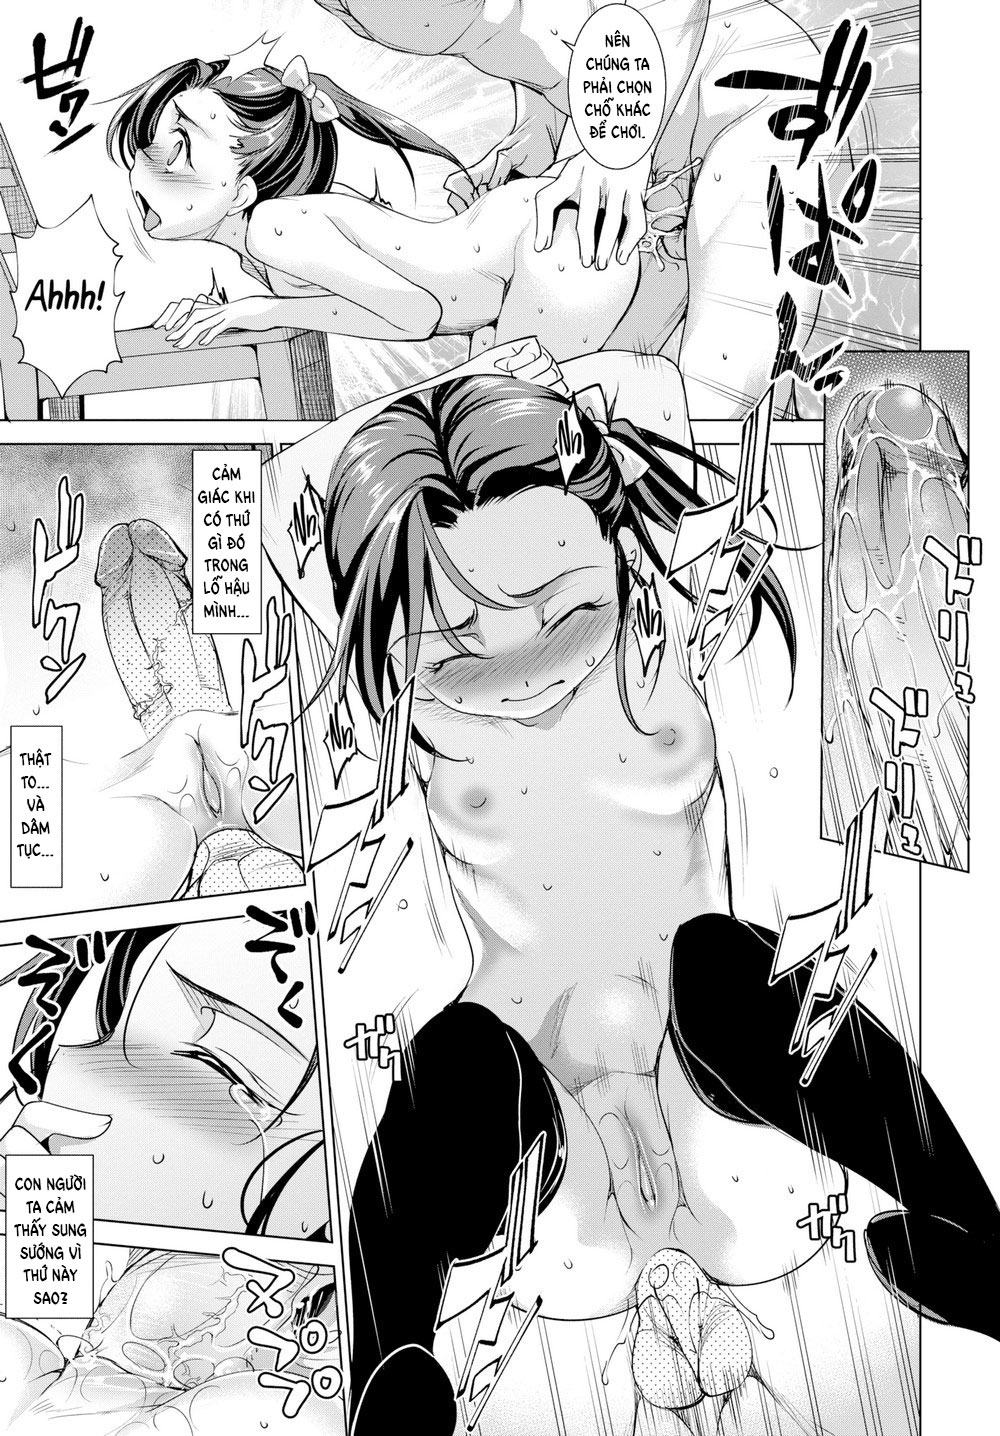 HentaiVN.net - Ảnh 13 - *** with Big Brother - Oneshot